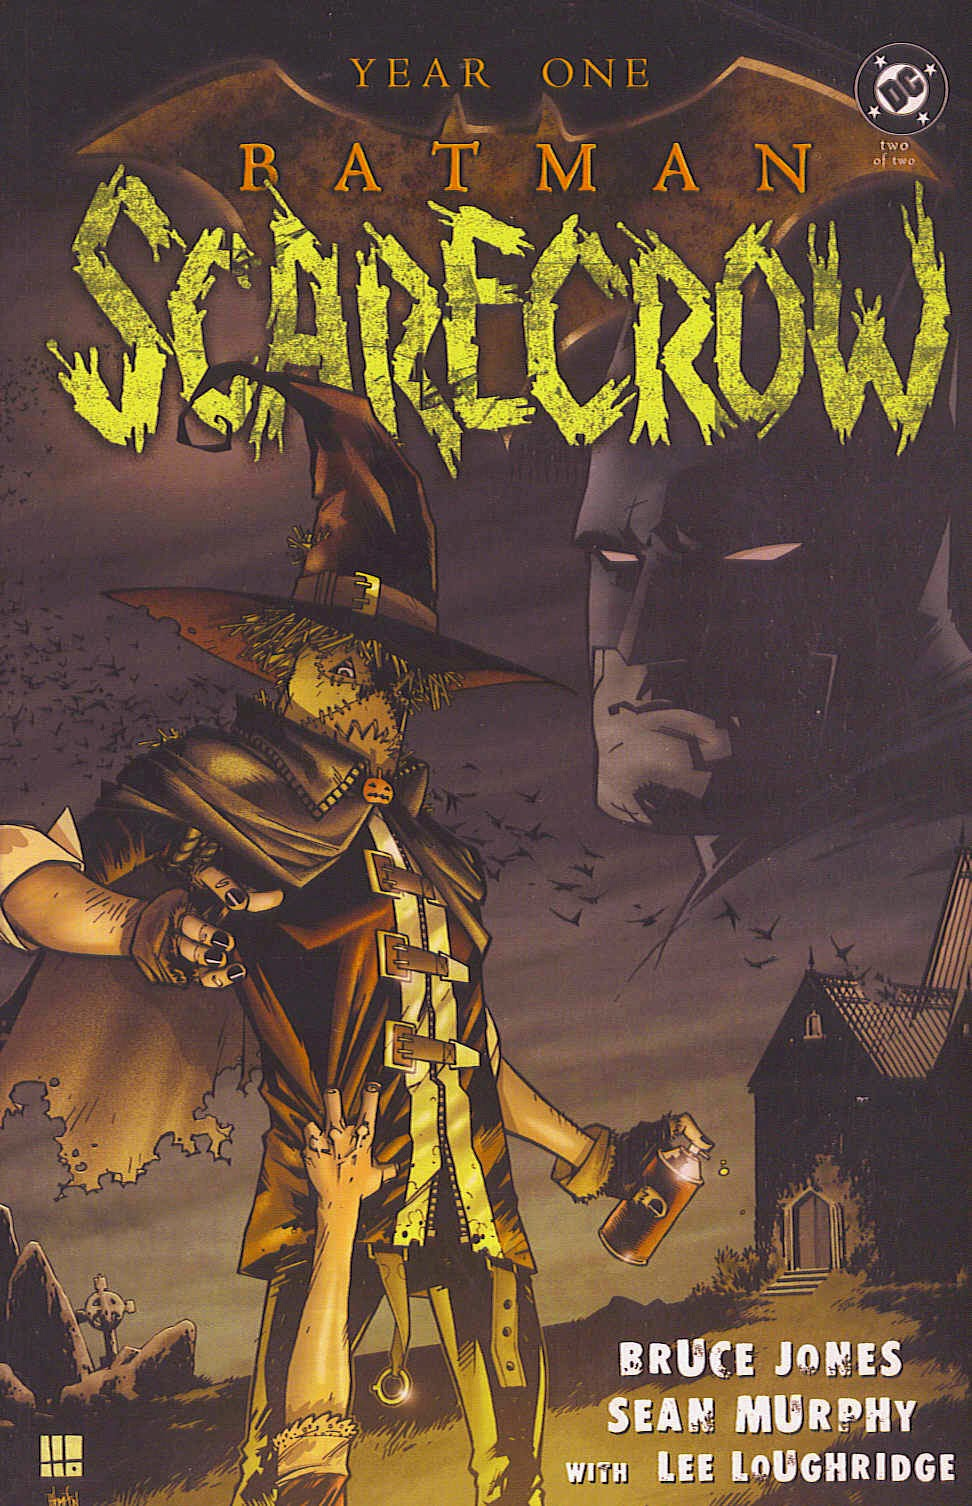 sean murphy screcrow